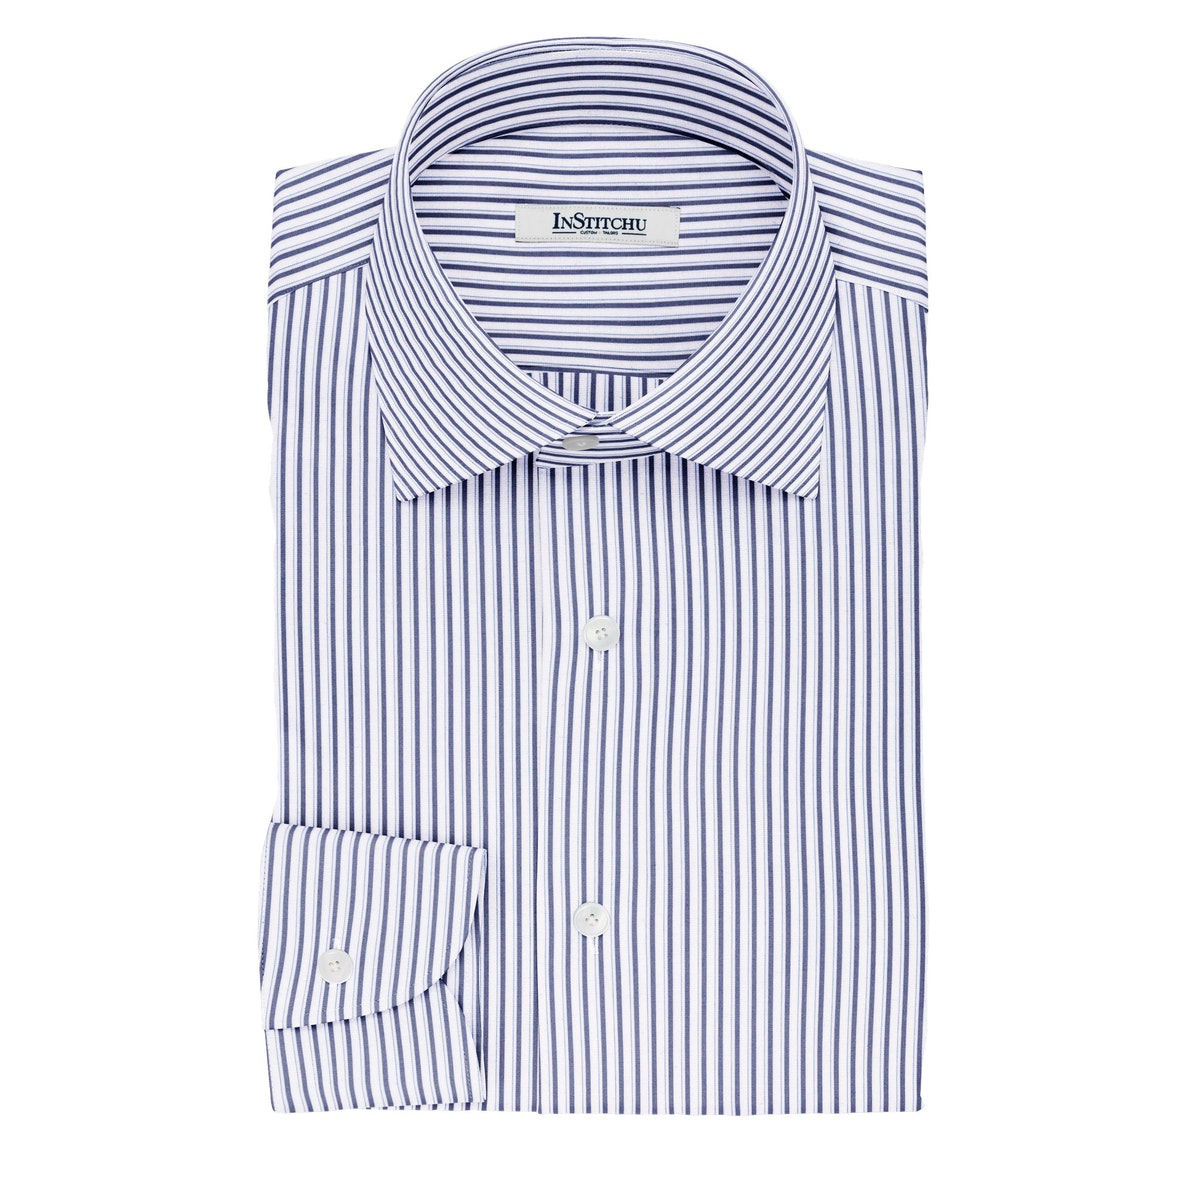 InStitchu Collection The Poe White and Blue Striped Cotton Shirt